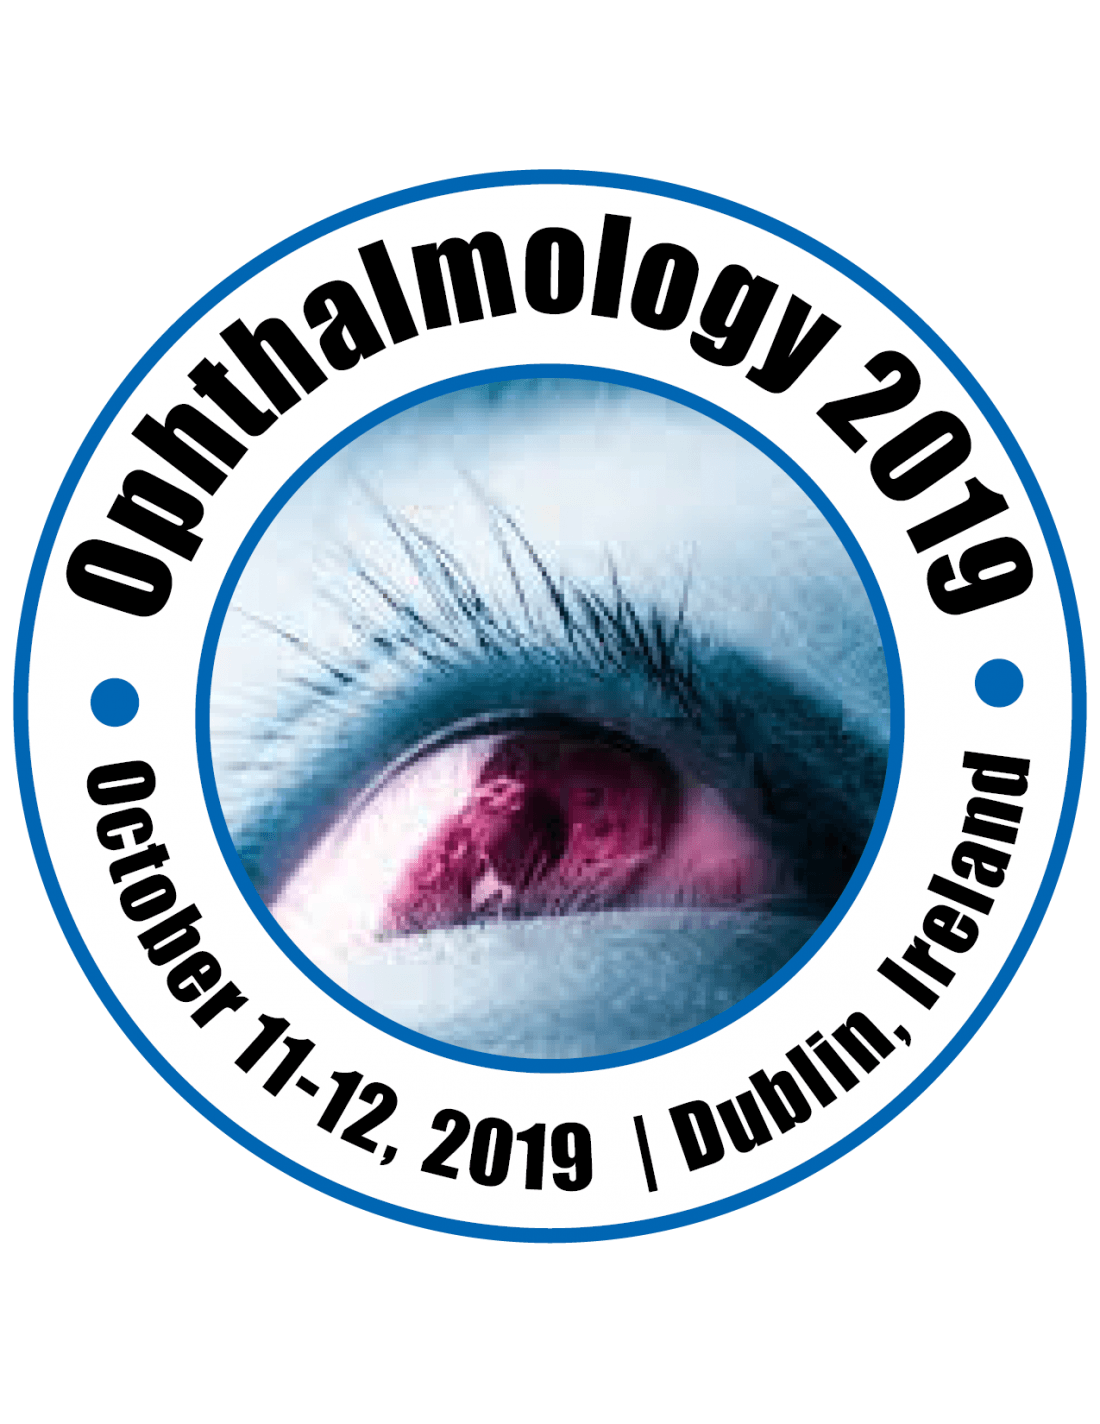 30th International Conference on Clinical and Experimental Ophthalmology